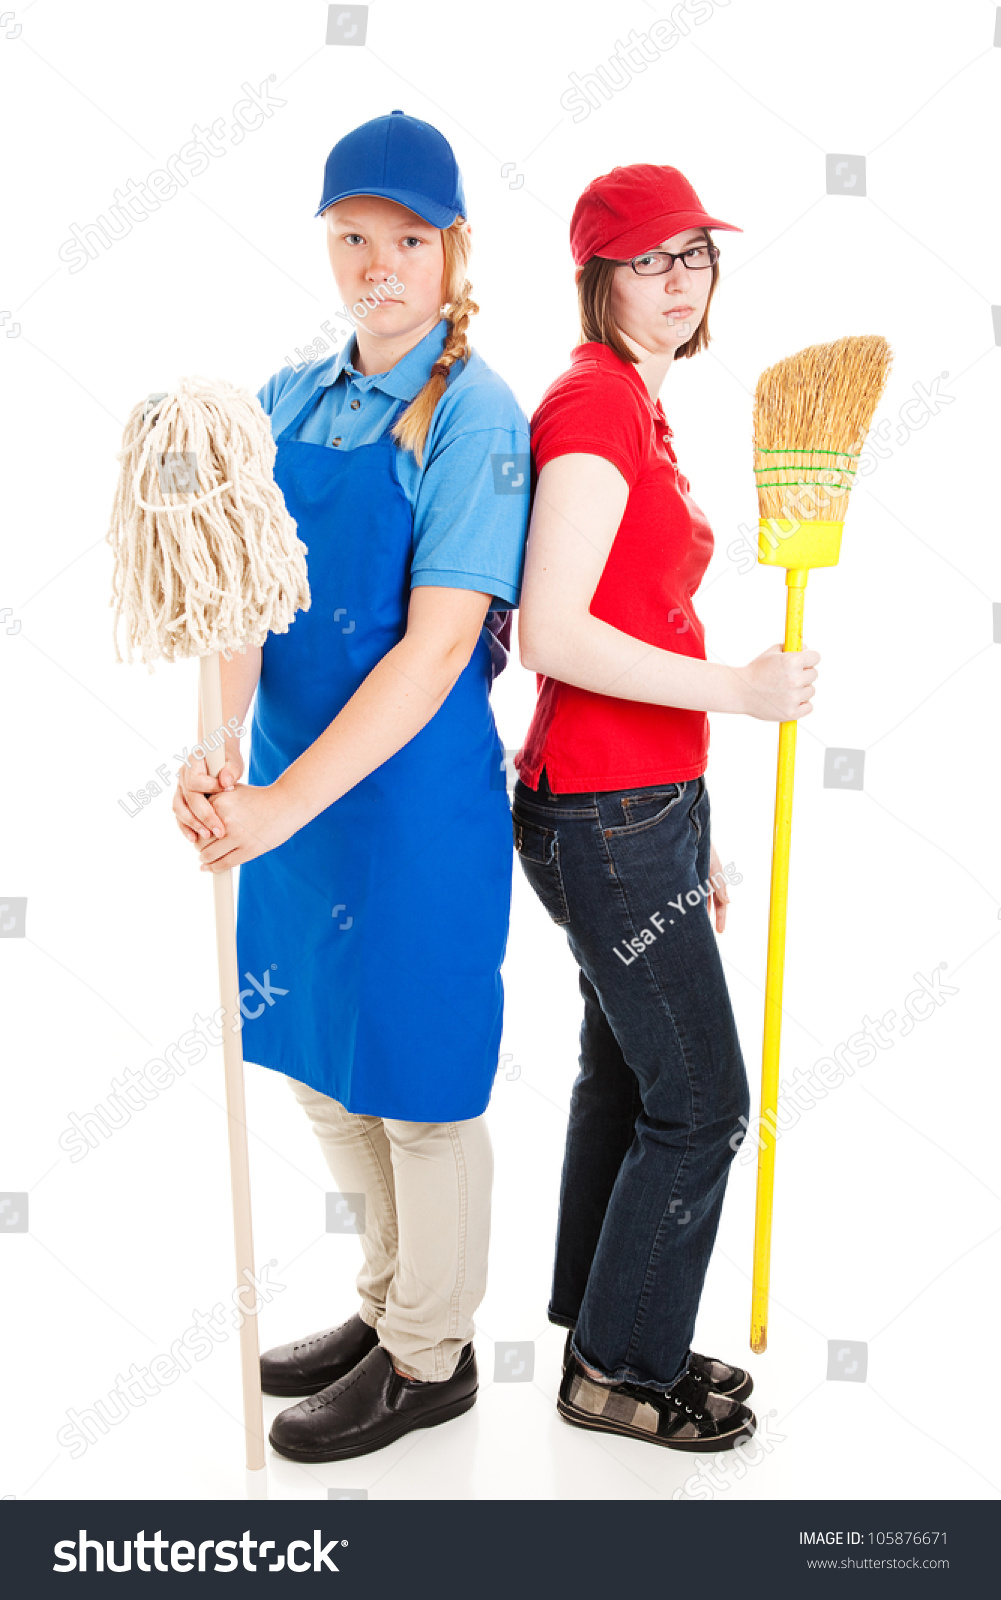 two teenage girls dressed in uniforms for their first jobs save to a lightbox